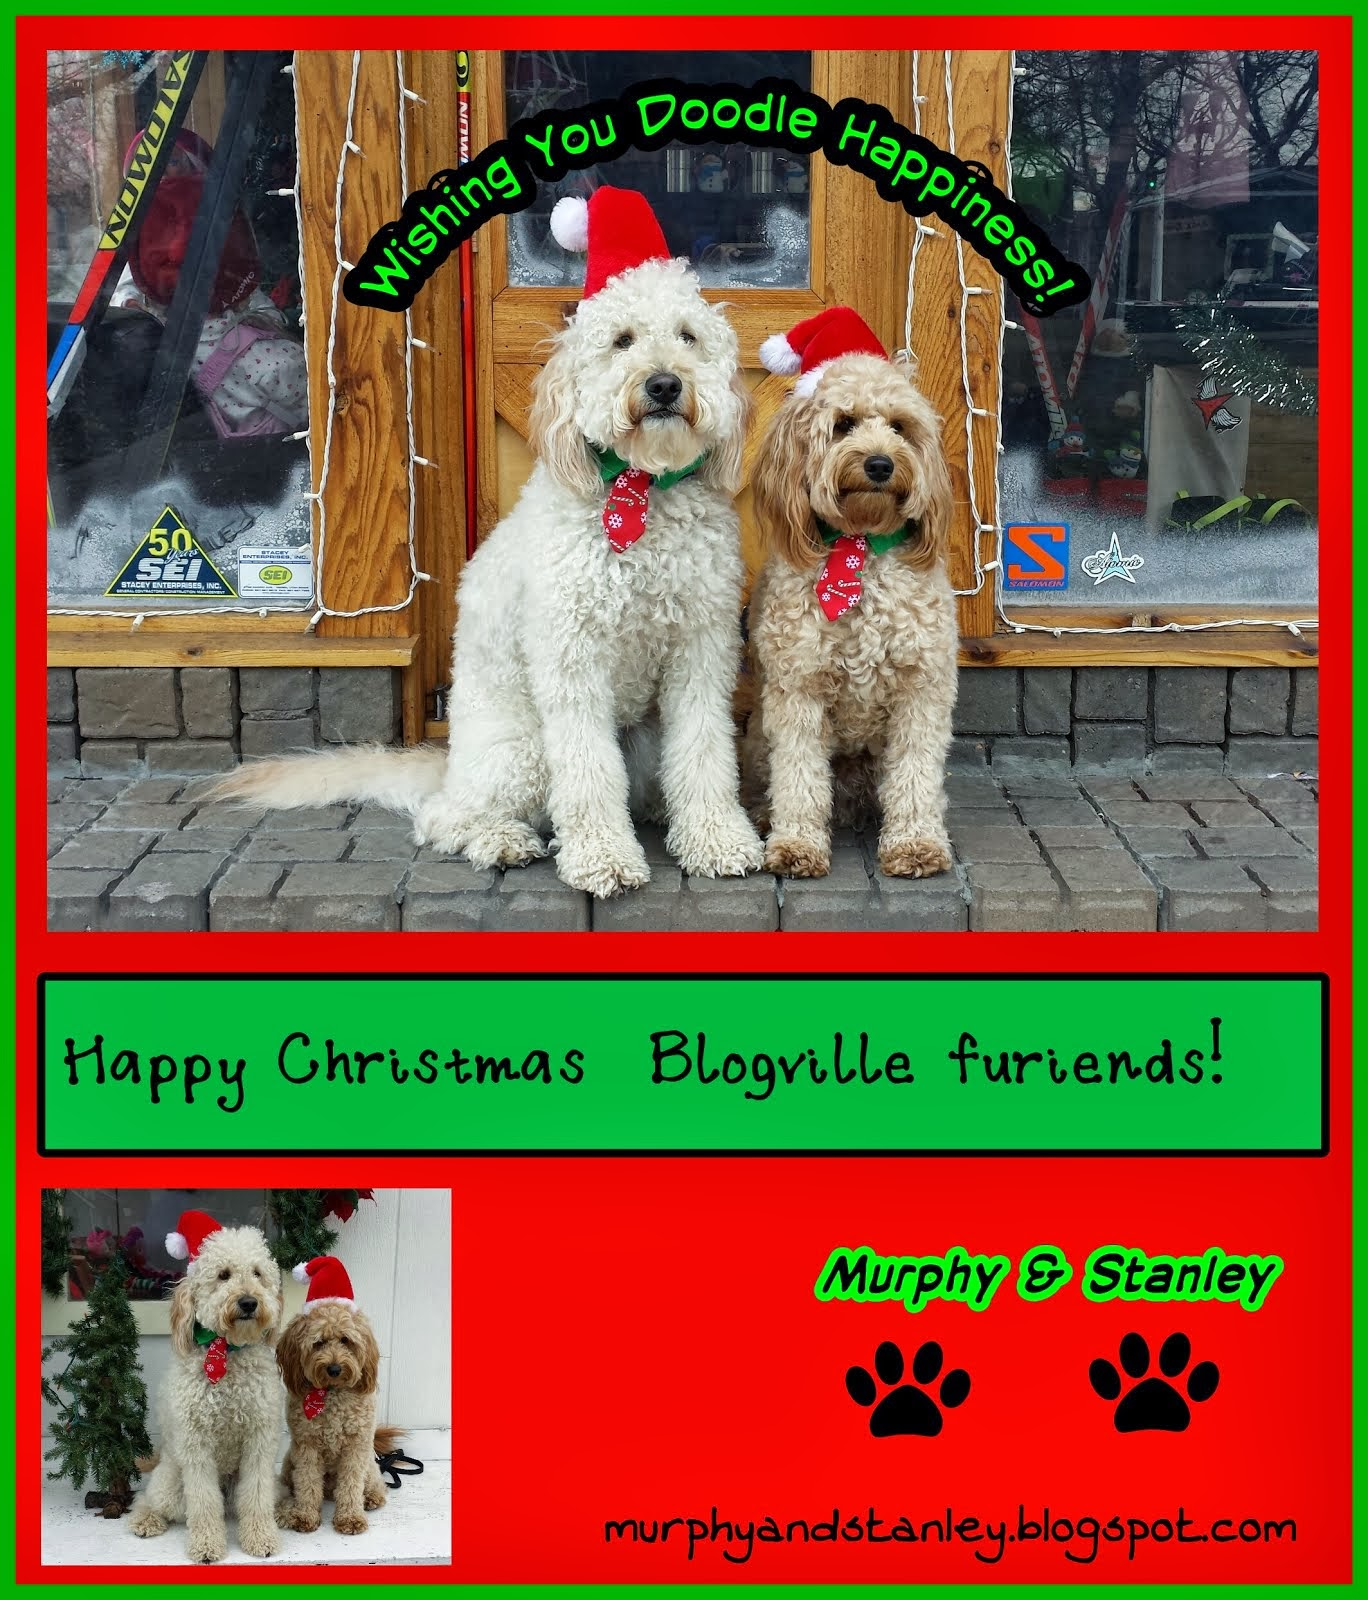 xmascard from Murphy&Stanley